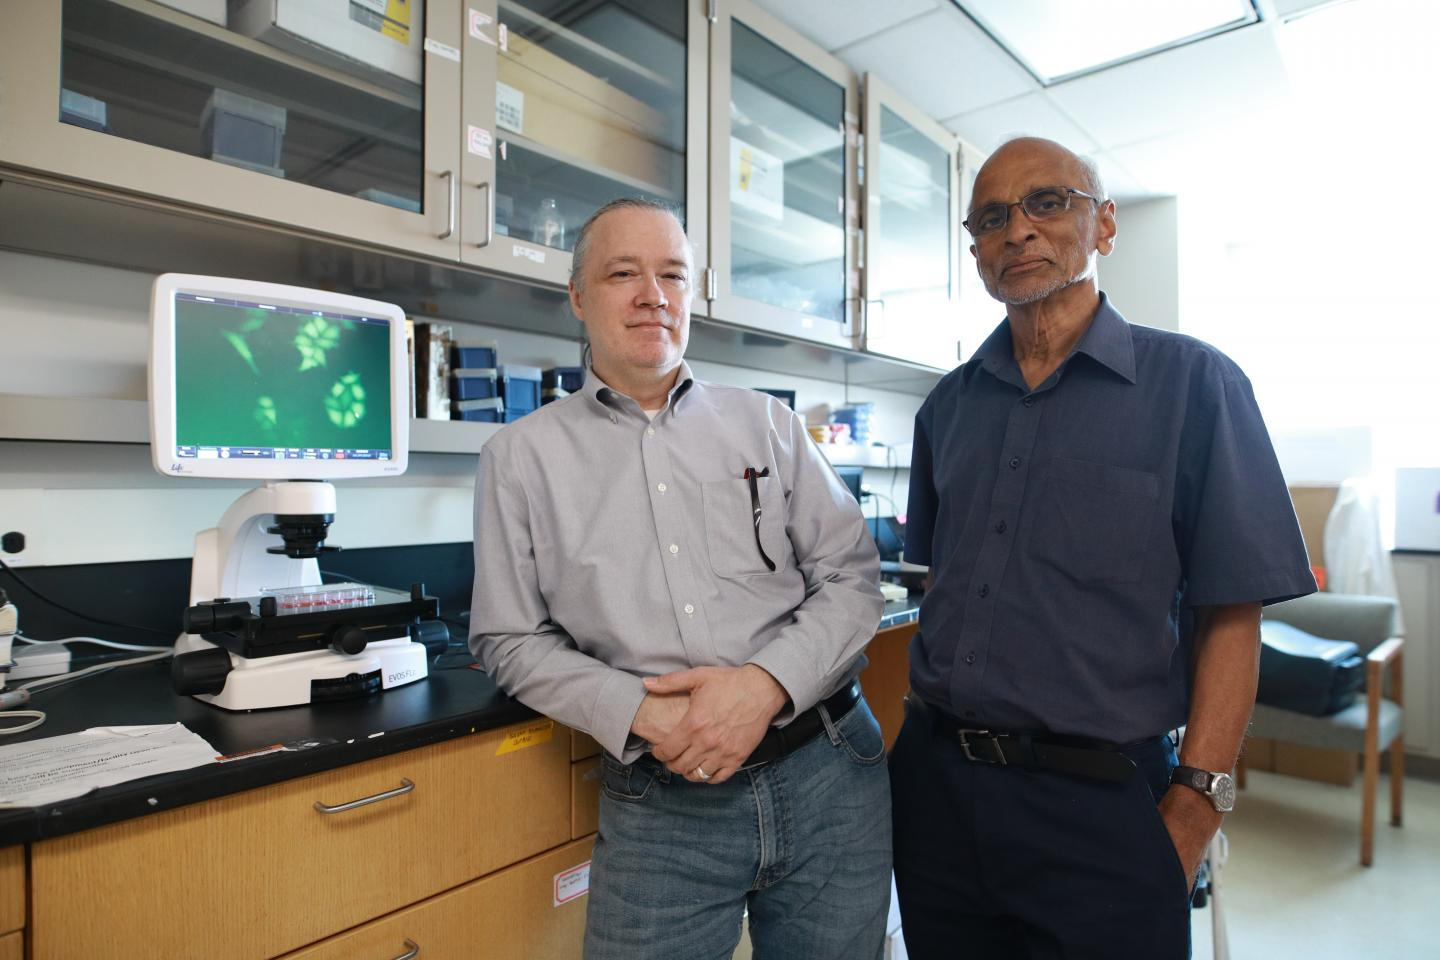 Killing the seeds of cancer: A new finding shows potential in destroying cancer stem cells